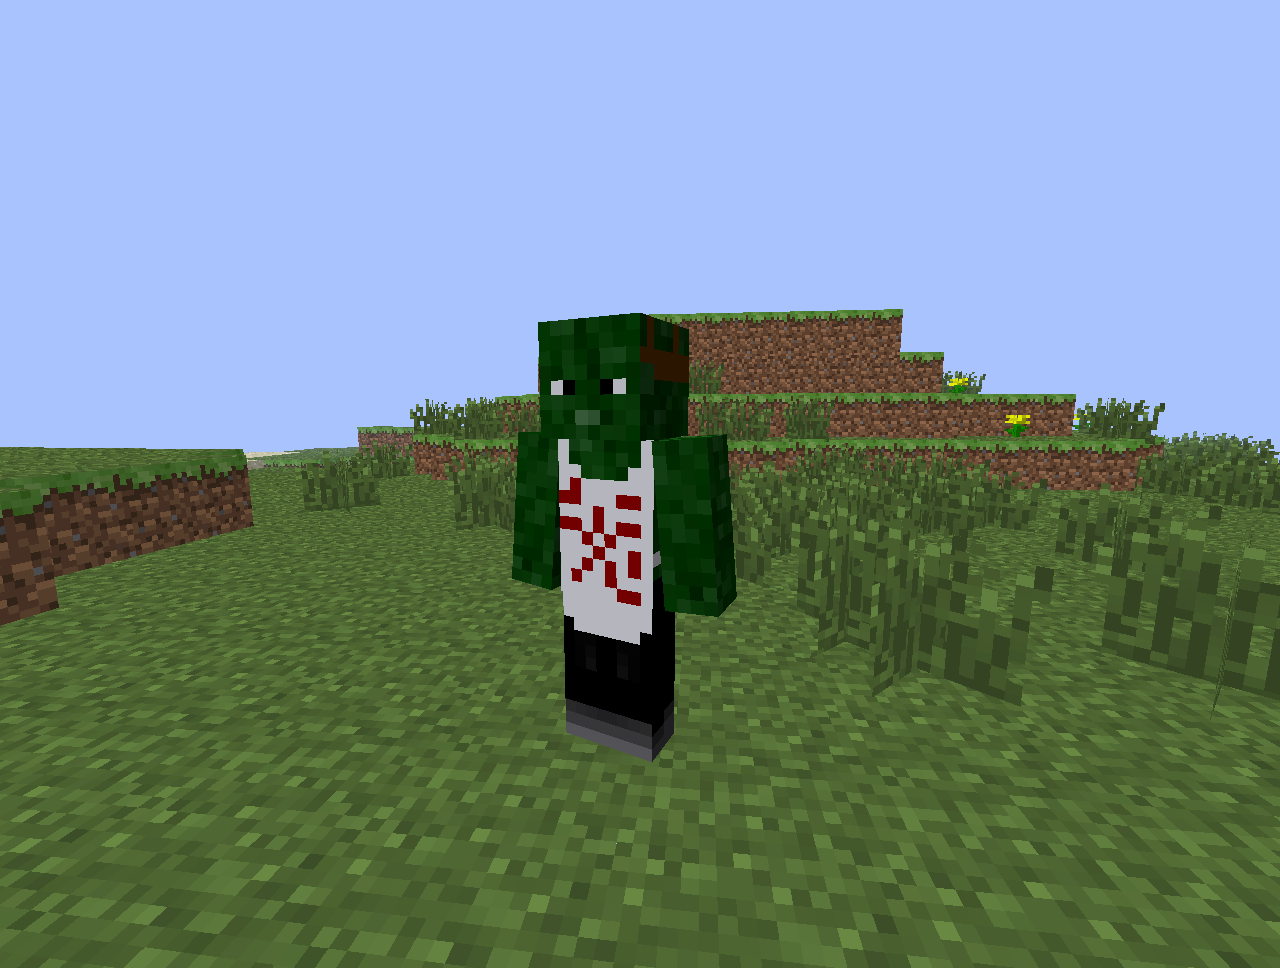 http://minecraft-forum.net/wp-content/uploads/2013/04/8d336__Mo-Zombies-Mod-13.png